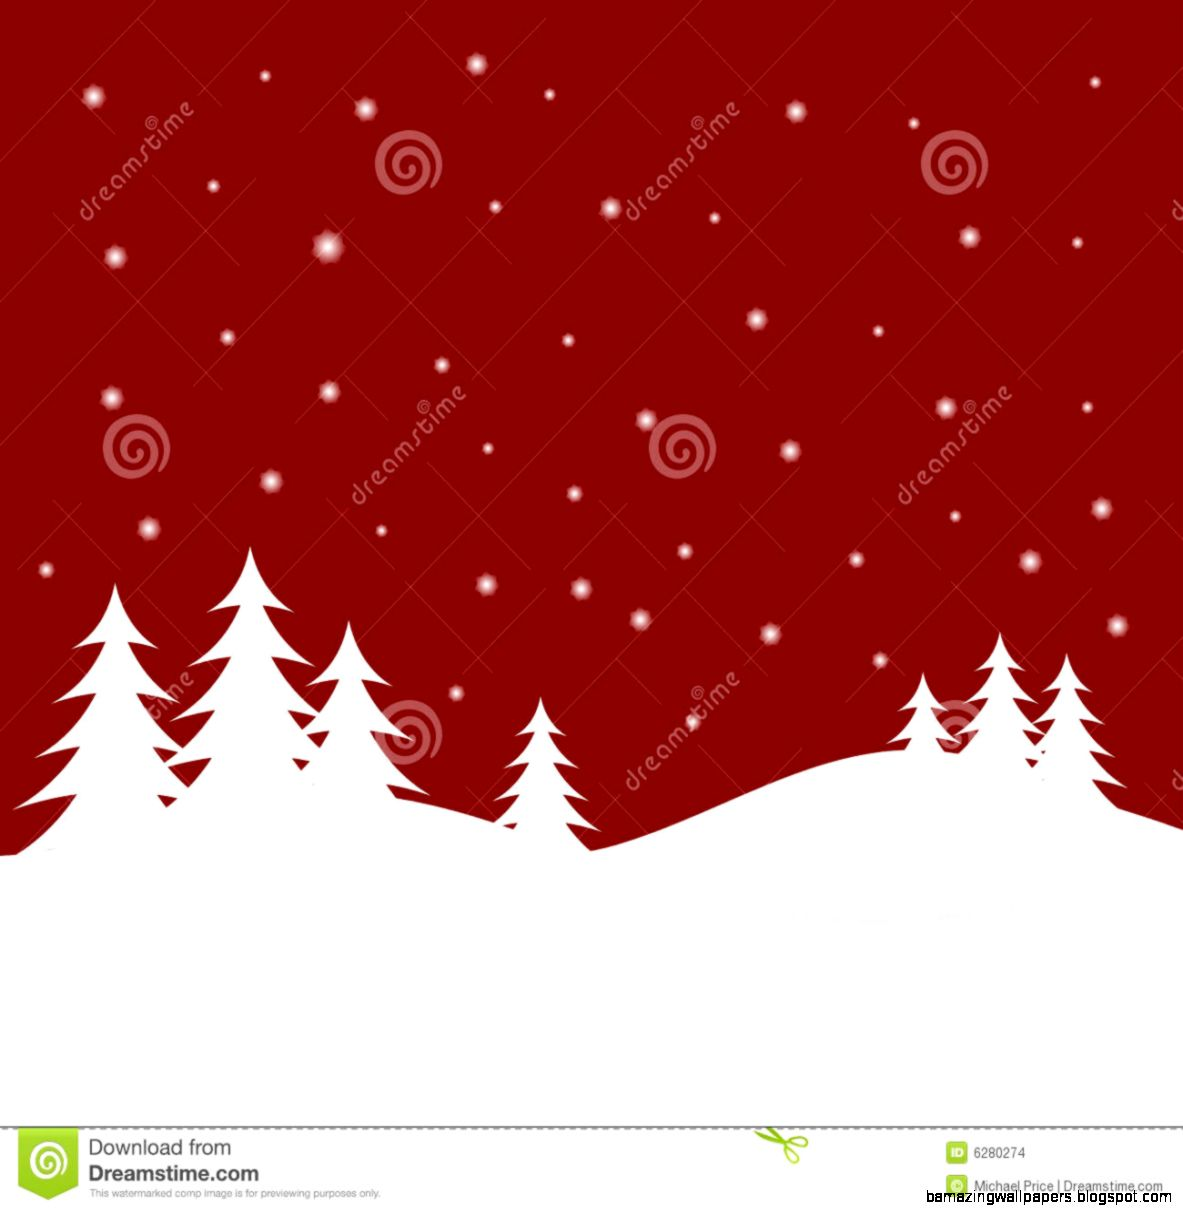 Red Christmas Winter Scene Stock Images   Image 6280274